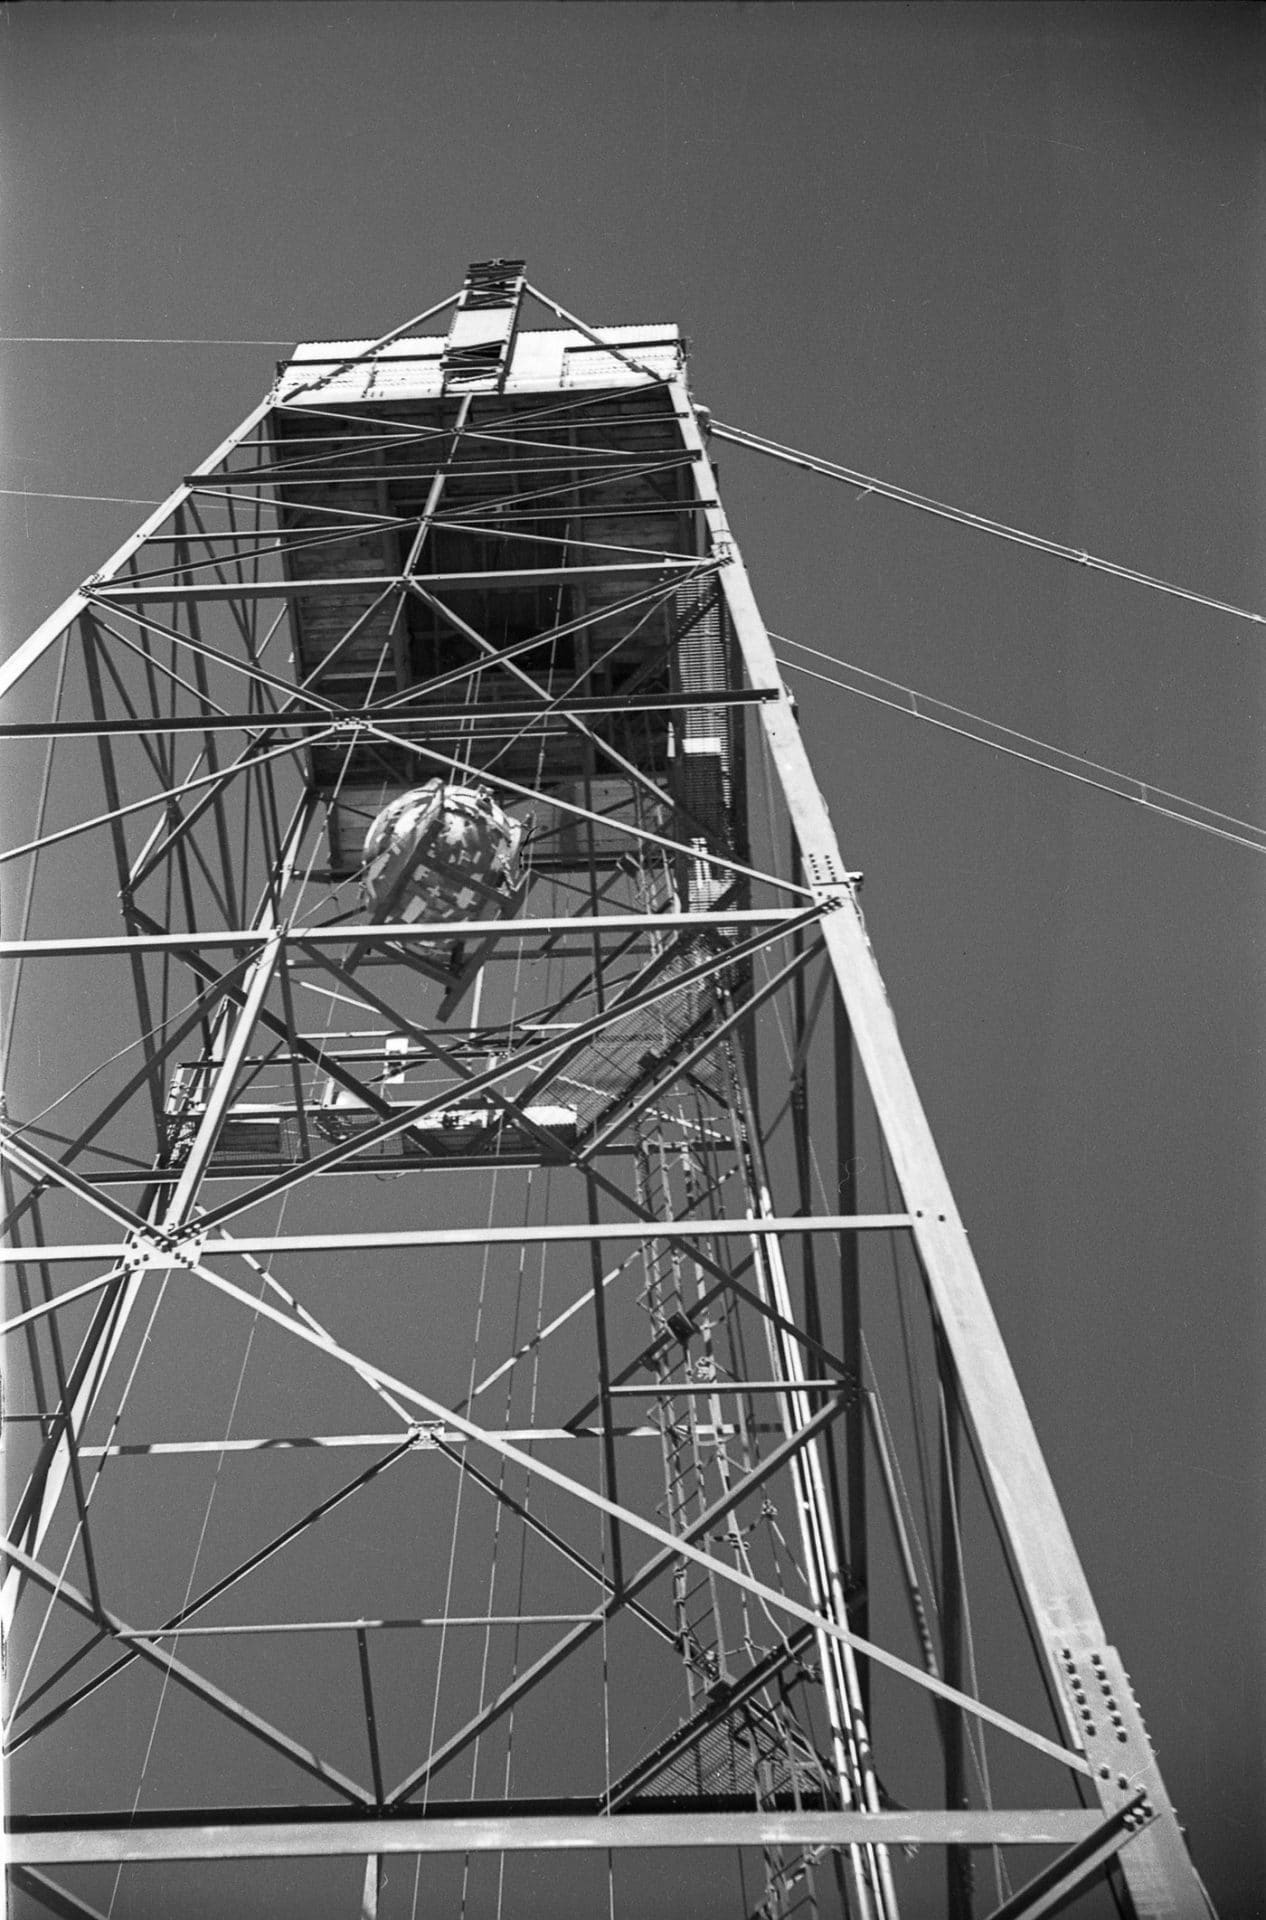 The gadget was lifted to the top of the tower on July 14, two days before it was triggered.